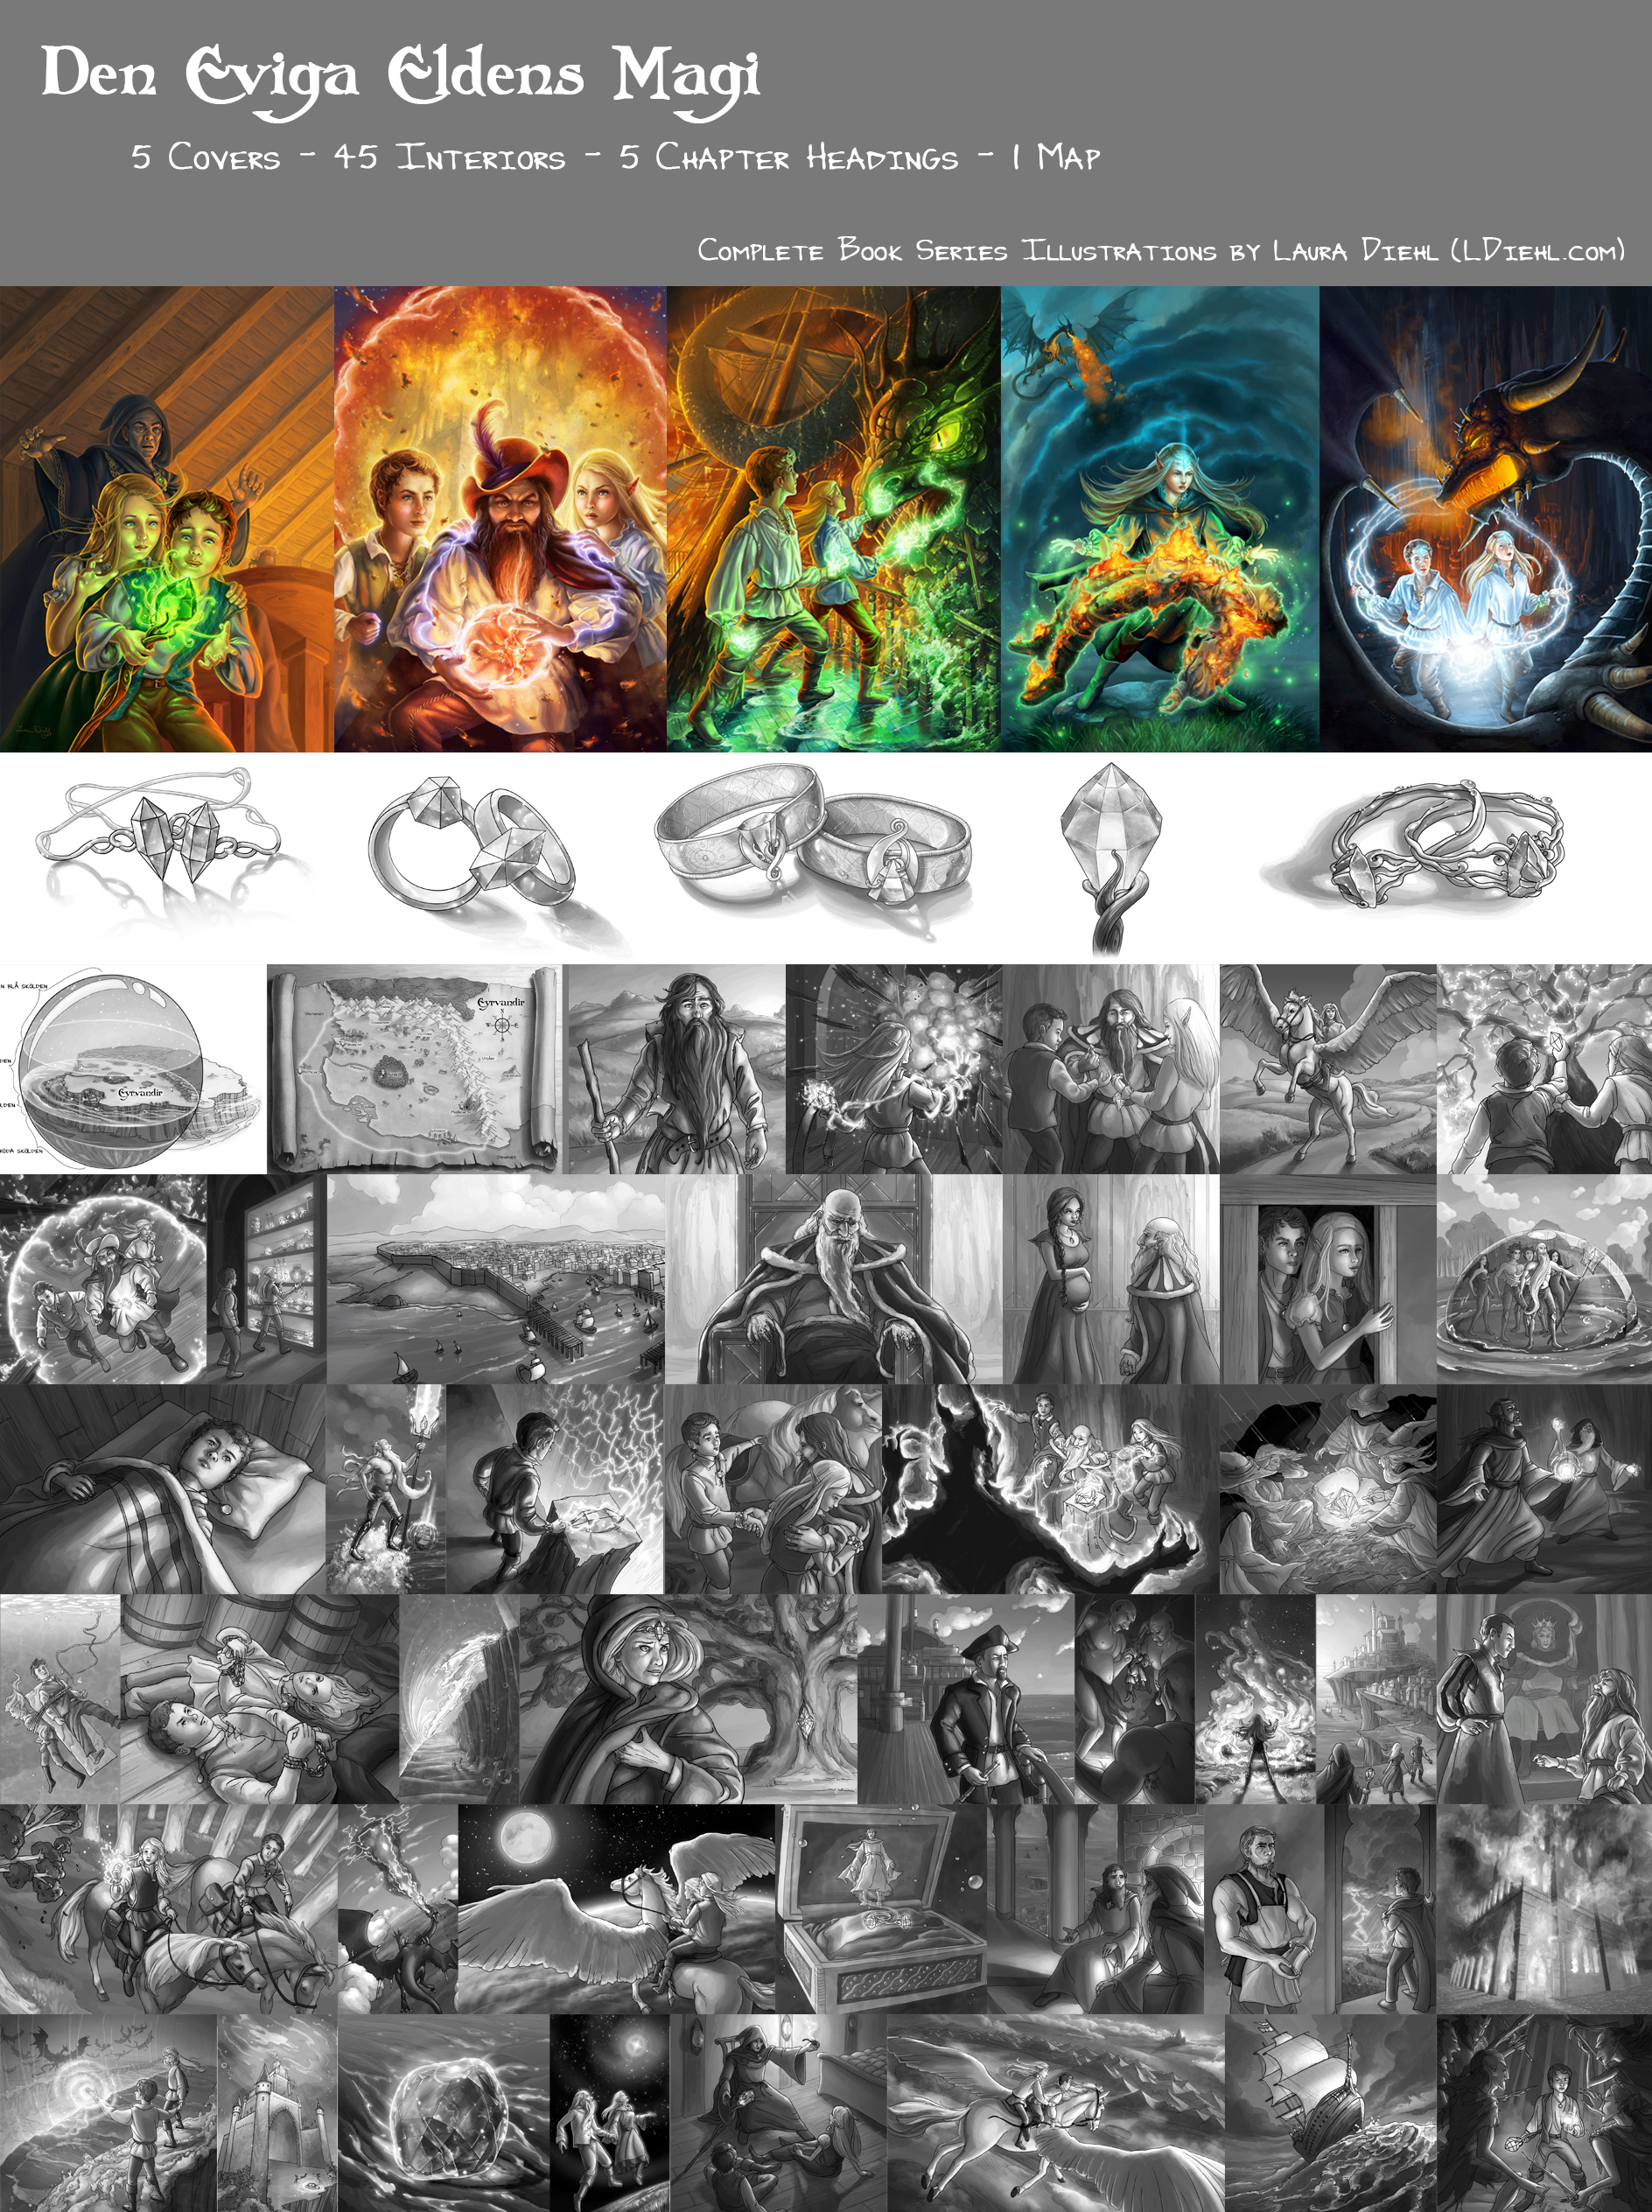 Poster of all images created for series.